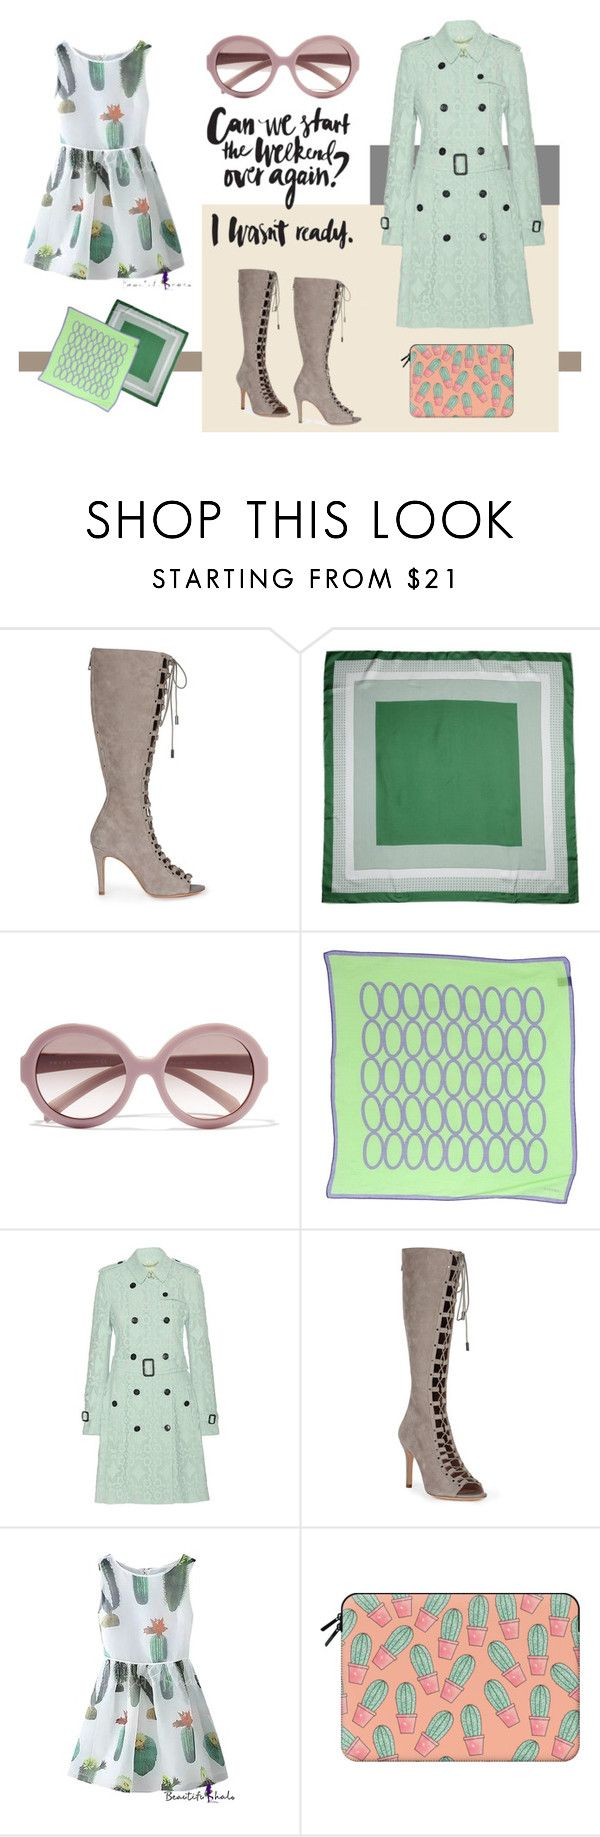 """Cactus chic"" by pinfi on Polyvore featuring CÉLINE, Prada, Piombo, Burberry and Casetify#fashion #trends"